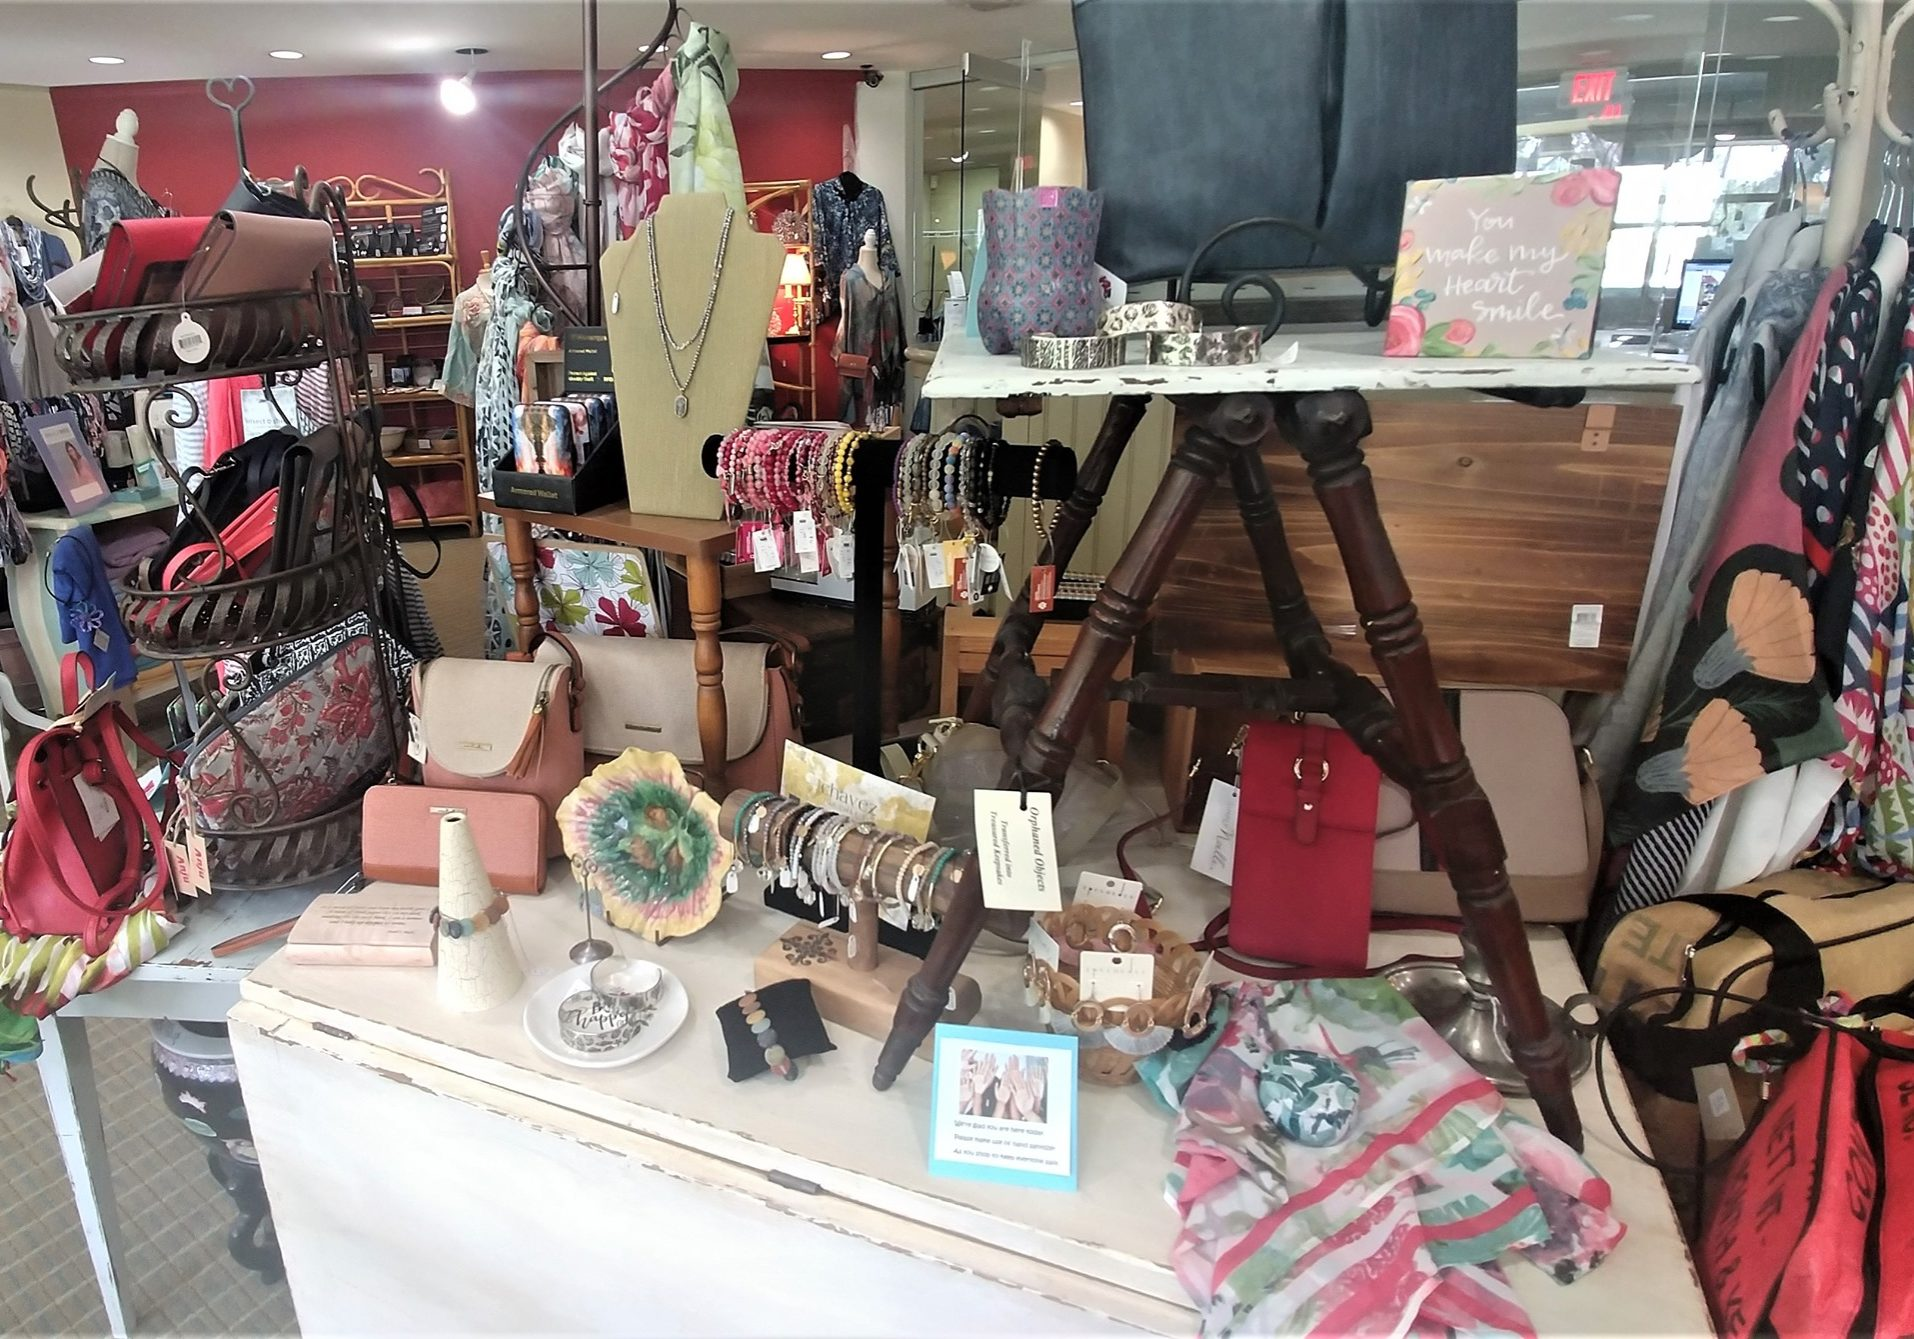 Gift shop items like jewelry, purses, bags, and clothing